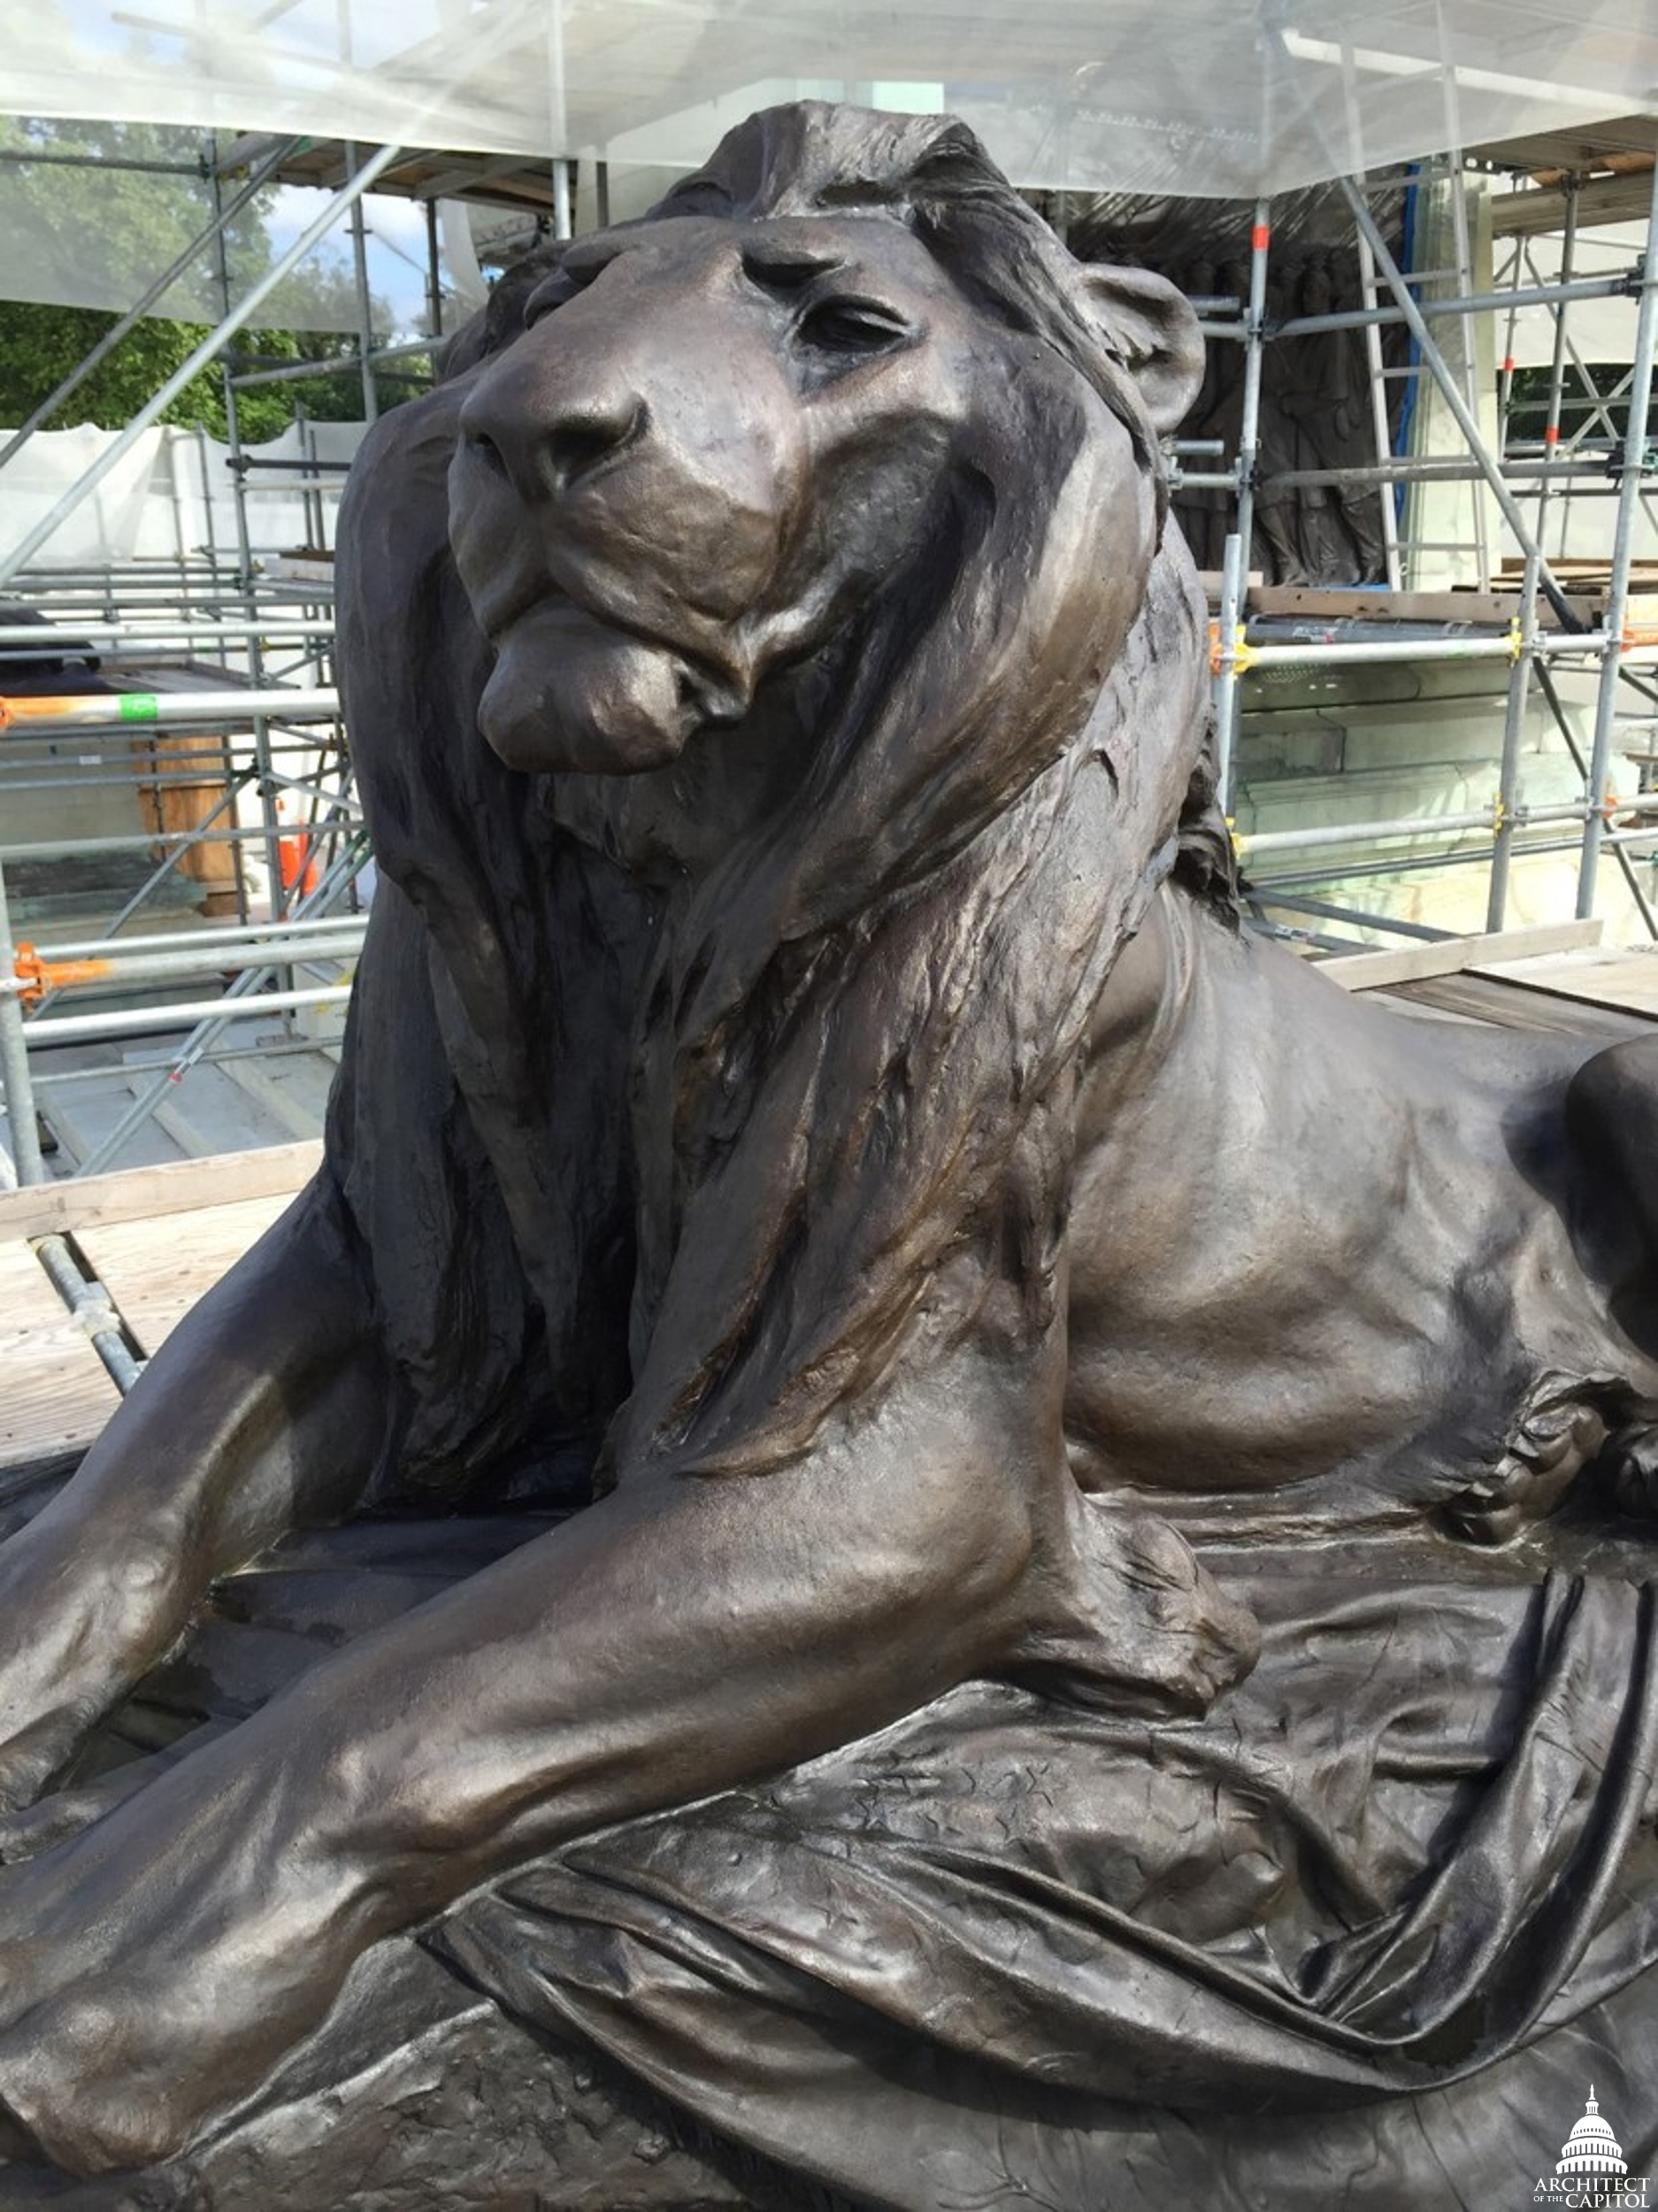 Grant Memorial lion after corrosion was removed from the sculpture.